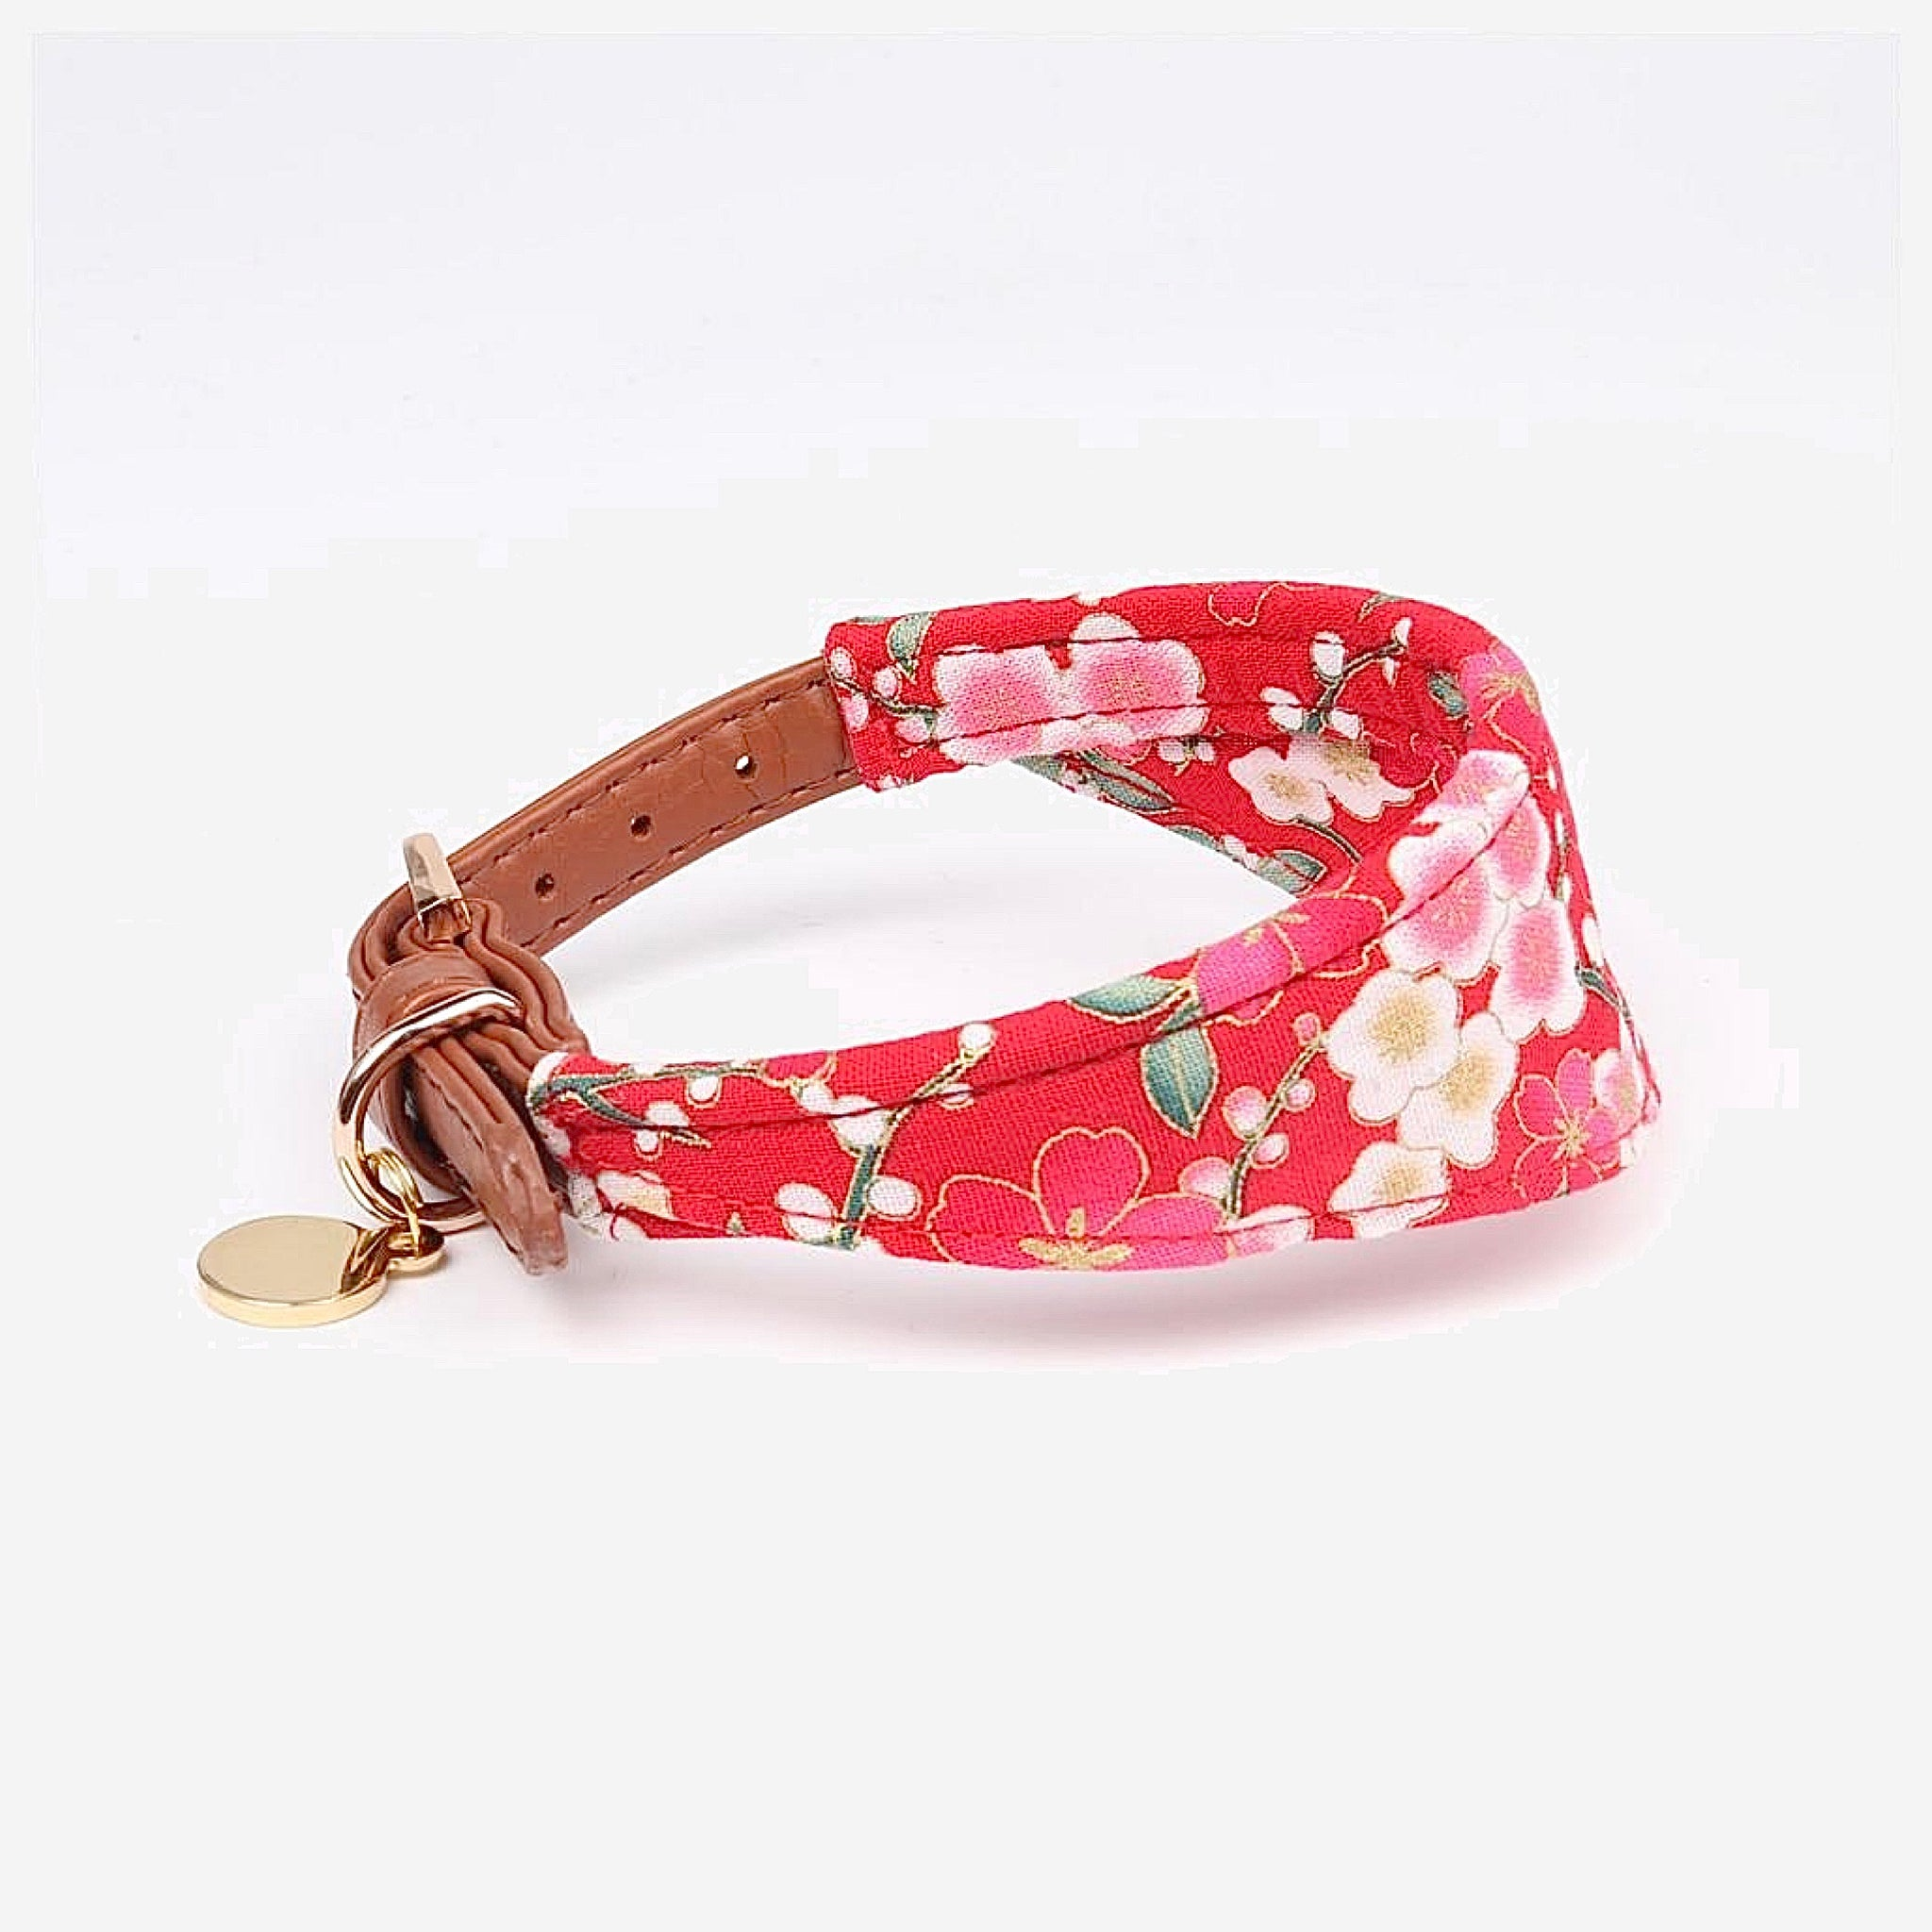 Japanese Bandana Pet Collar    Made of leather buckle design fine workmanship triangle scarf Japan pets supplies for cats and dogs Red Cherry Blossom Trending Stye